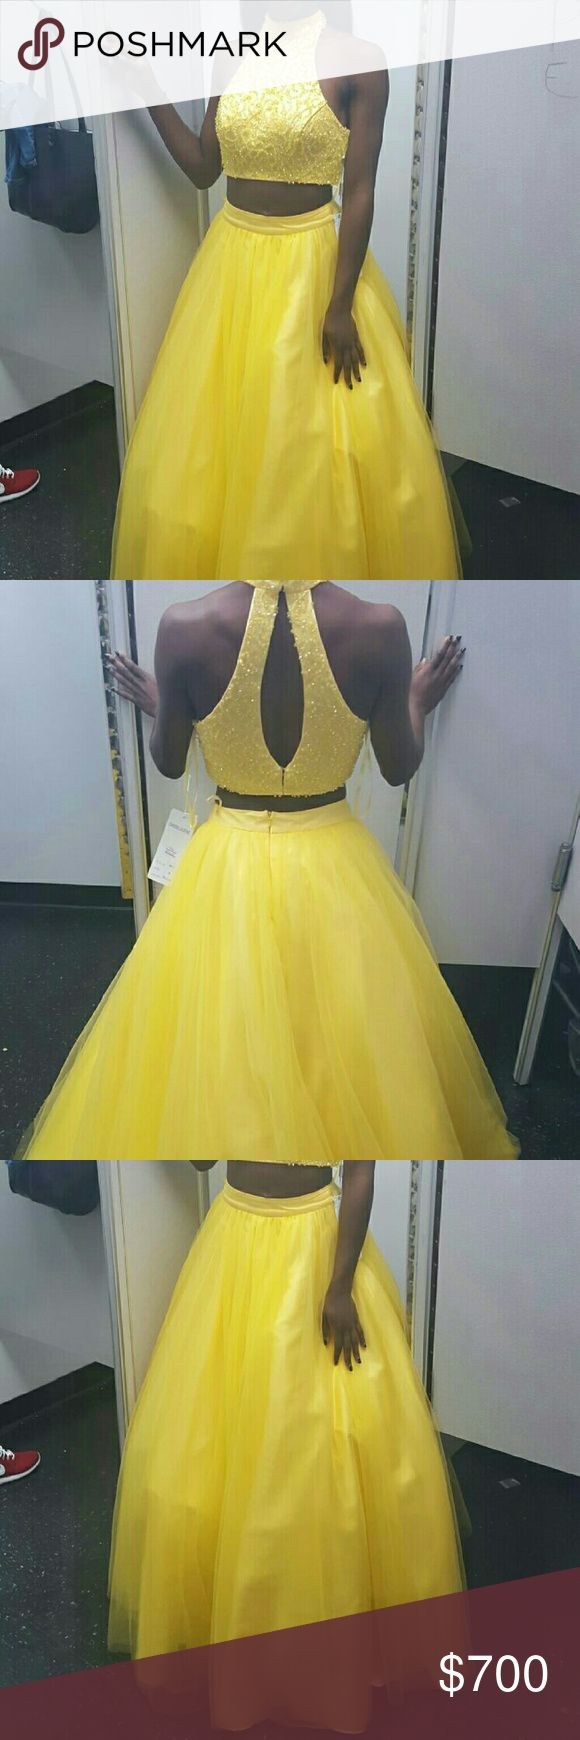 Prom Dress Yellow Two piece halter neck open back dress Dresses Prom